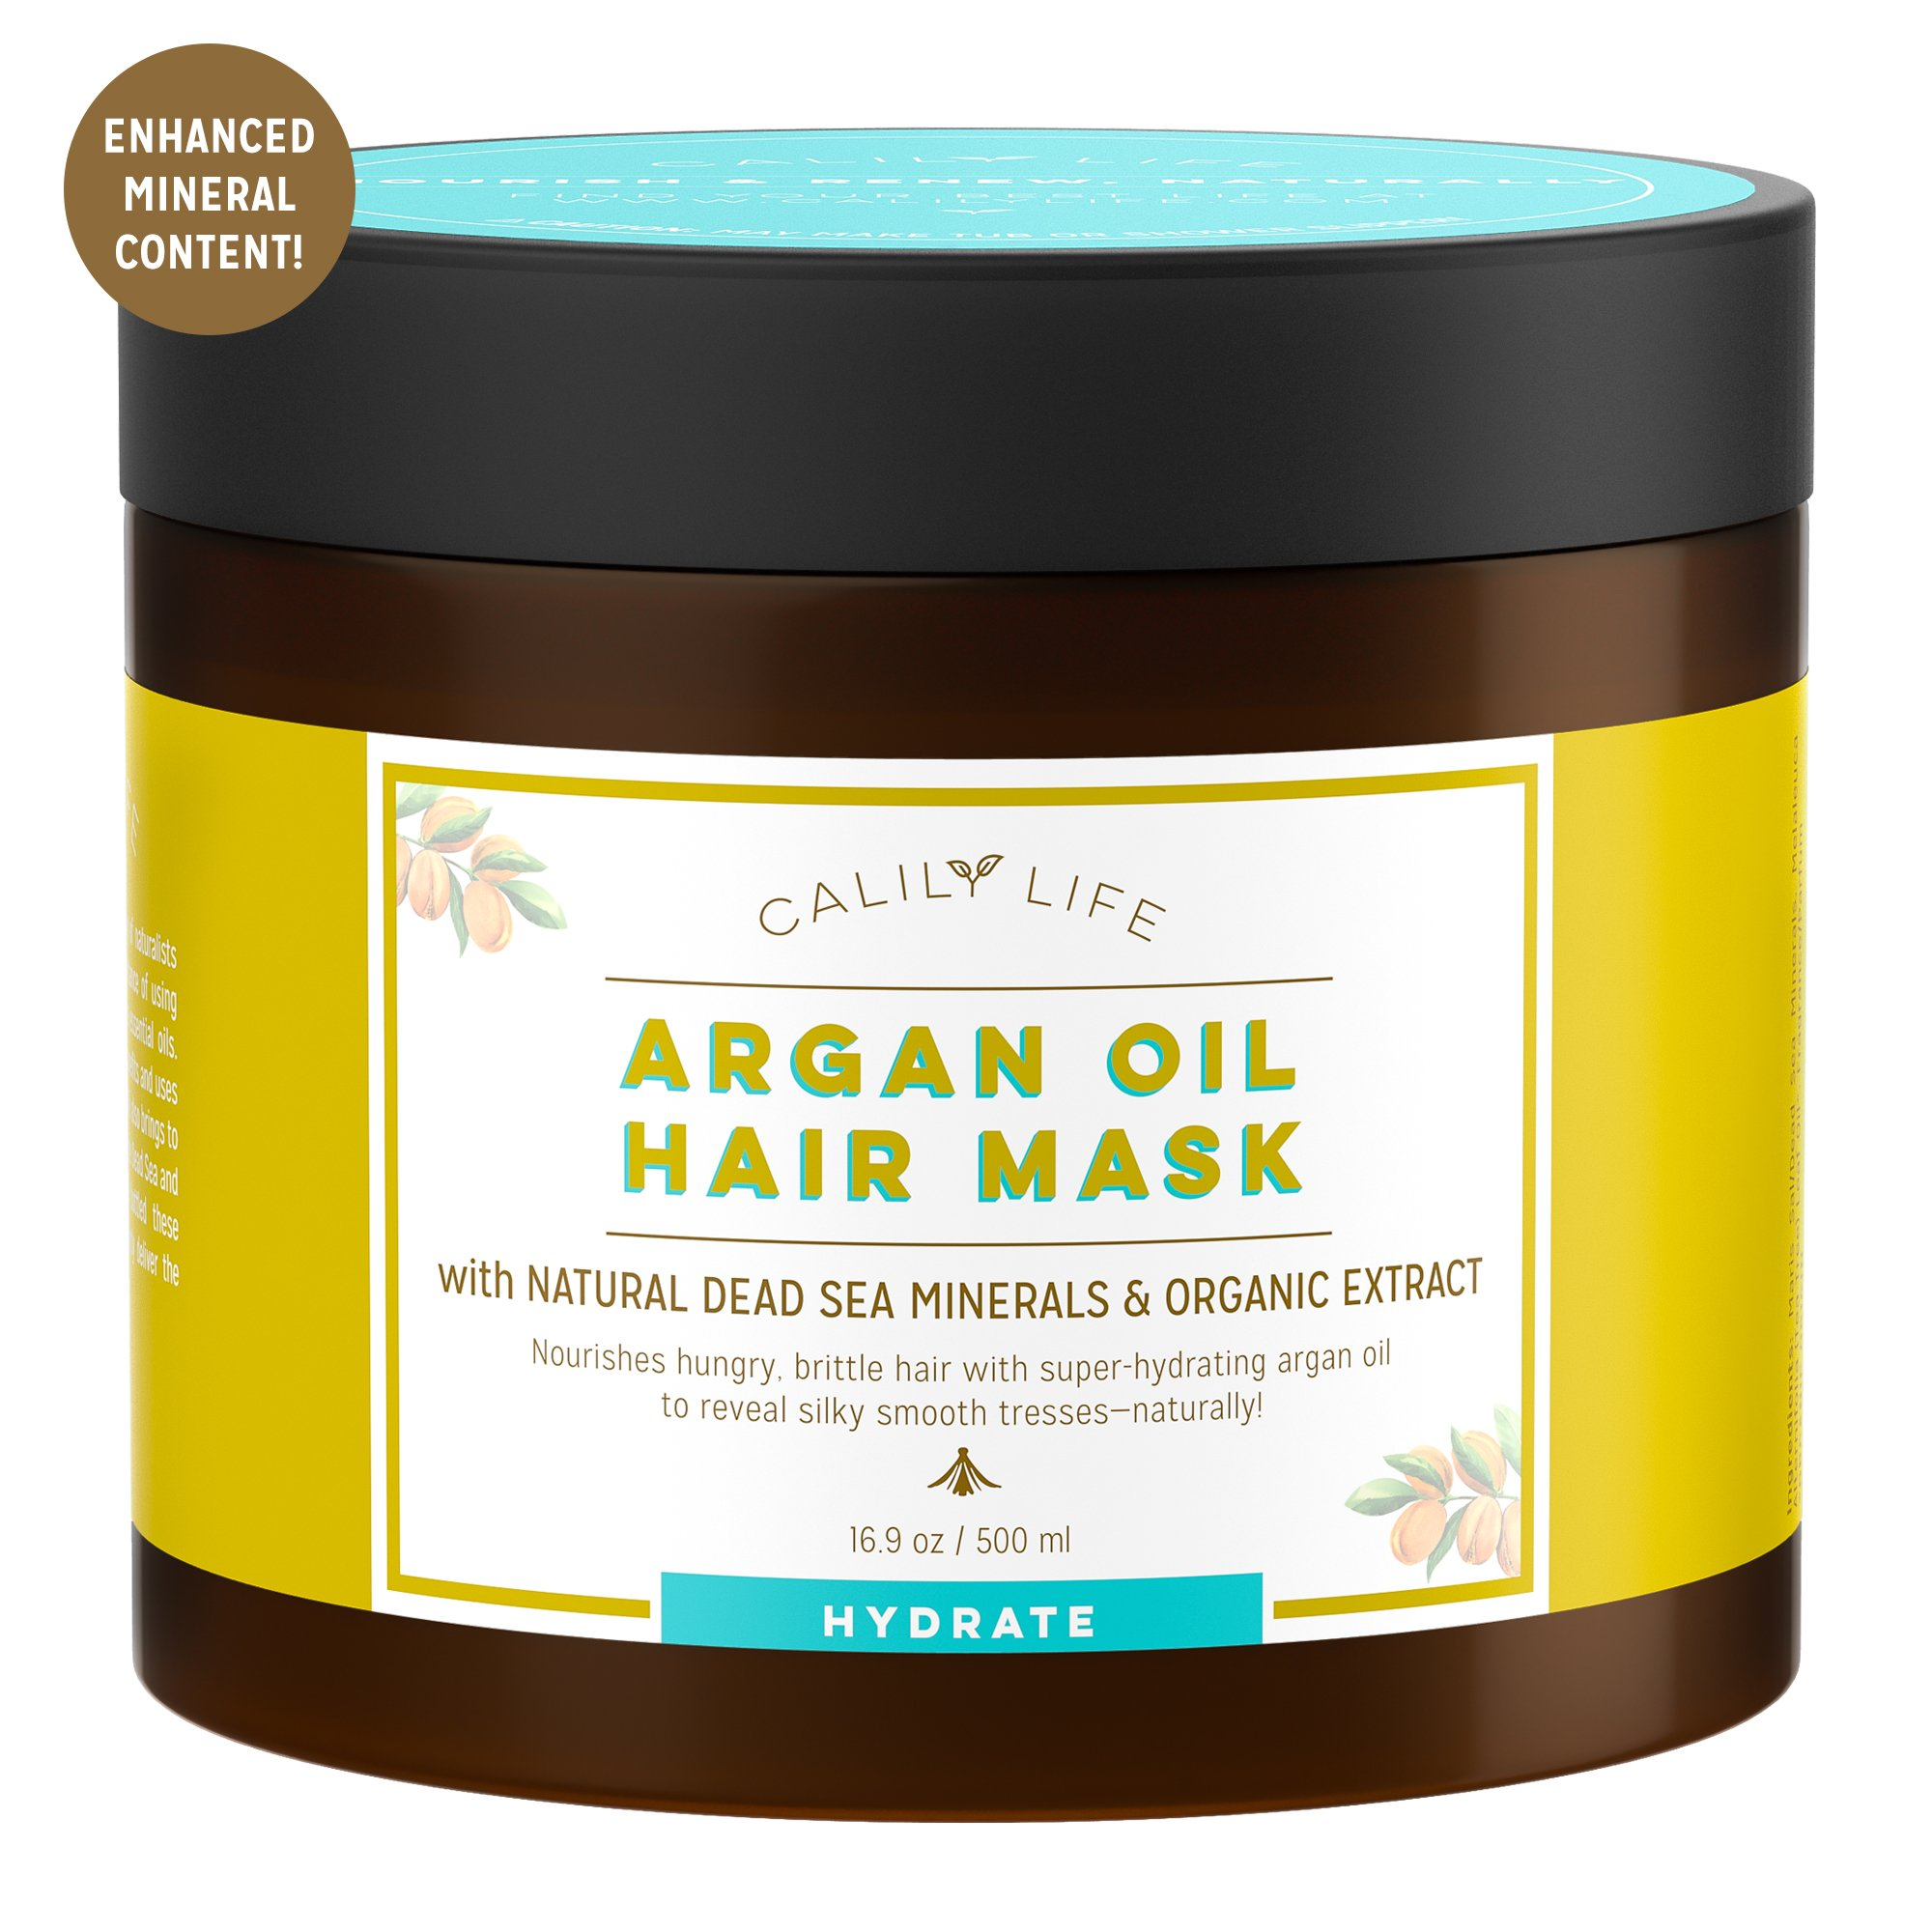 Calily Life Organic Moroccan Argan Oil Hair Mask with Dead Sea Minerals, 17 Oz. - Deep Conditioner and Nourishing - Promotes Healing & Hair Growth -Detoxifies, Strengthens, Shines & Softens [ENHANCED]